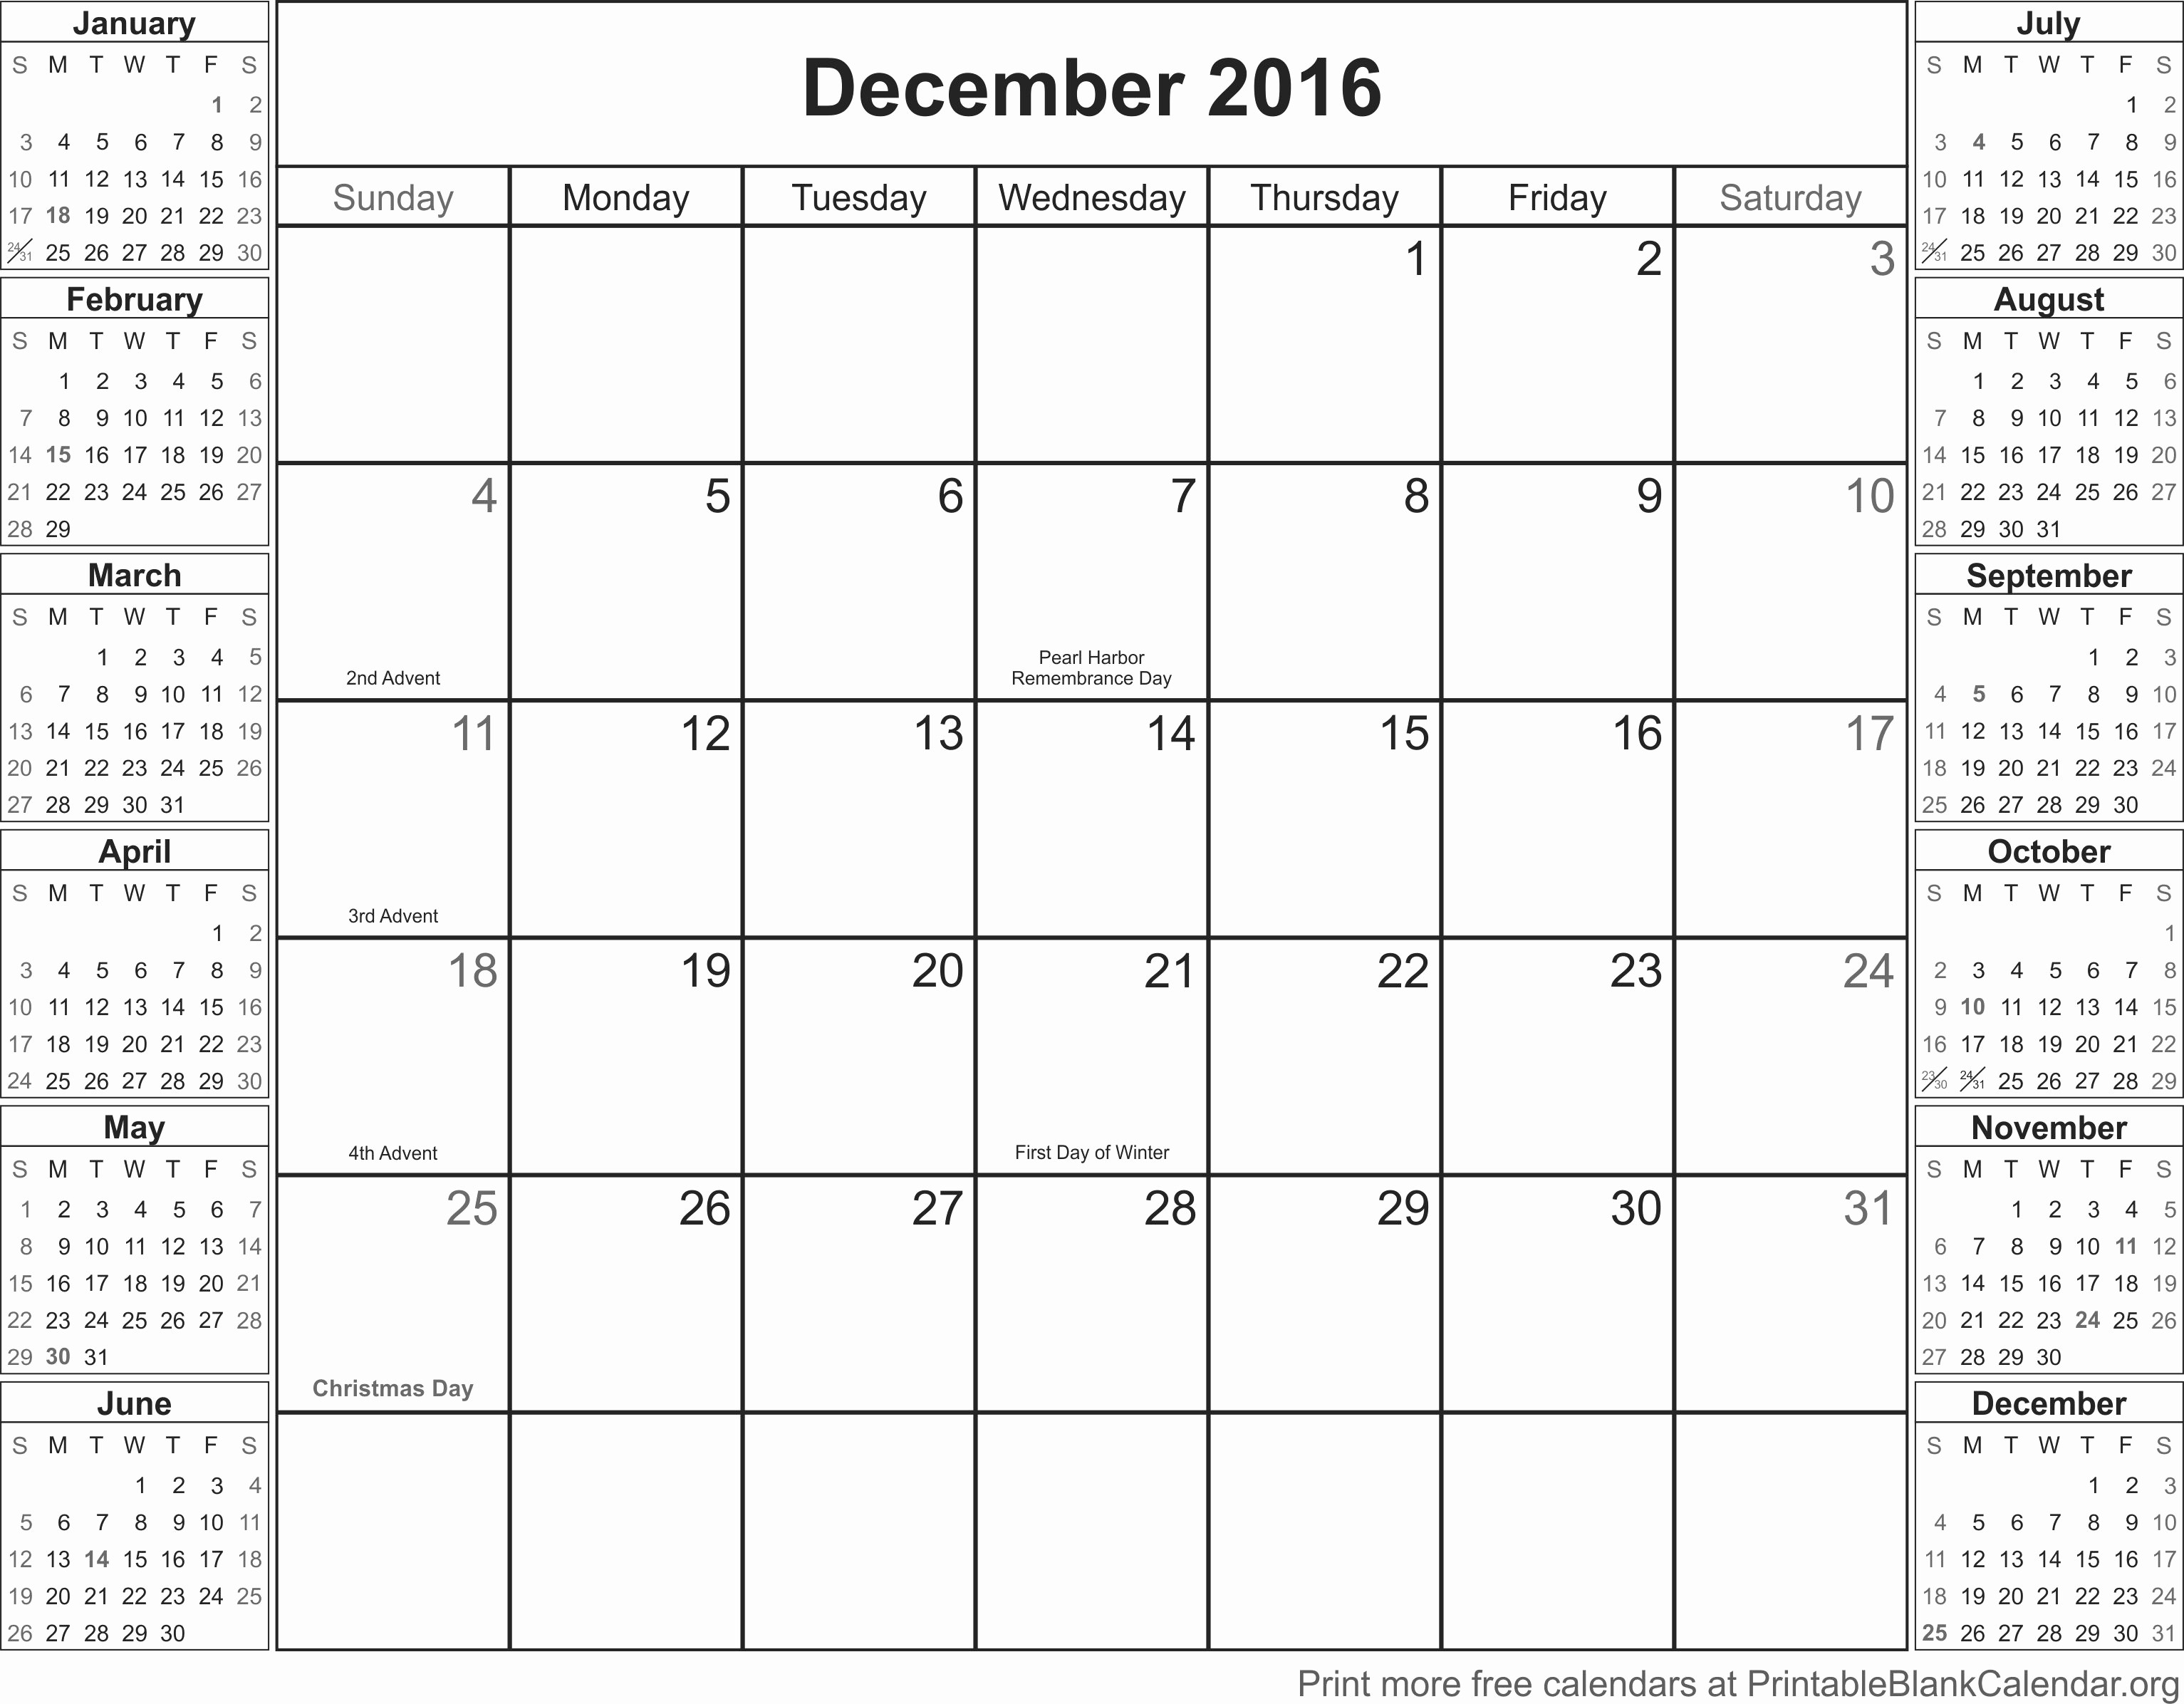 Blank December Calendar 2016 Printable Luxury December 2016 Free Printable Calendar Printable Blank